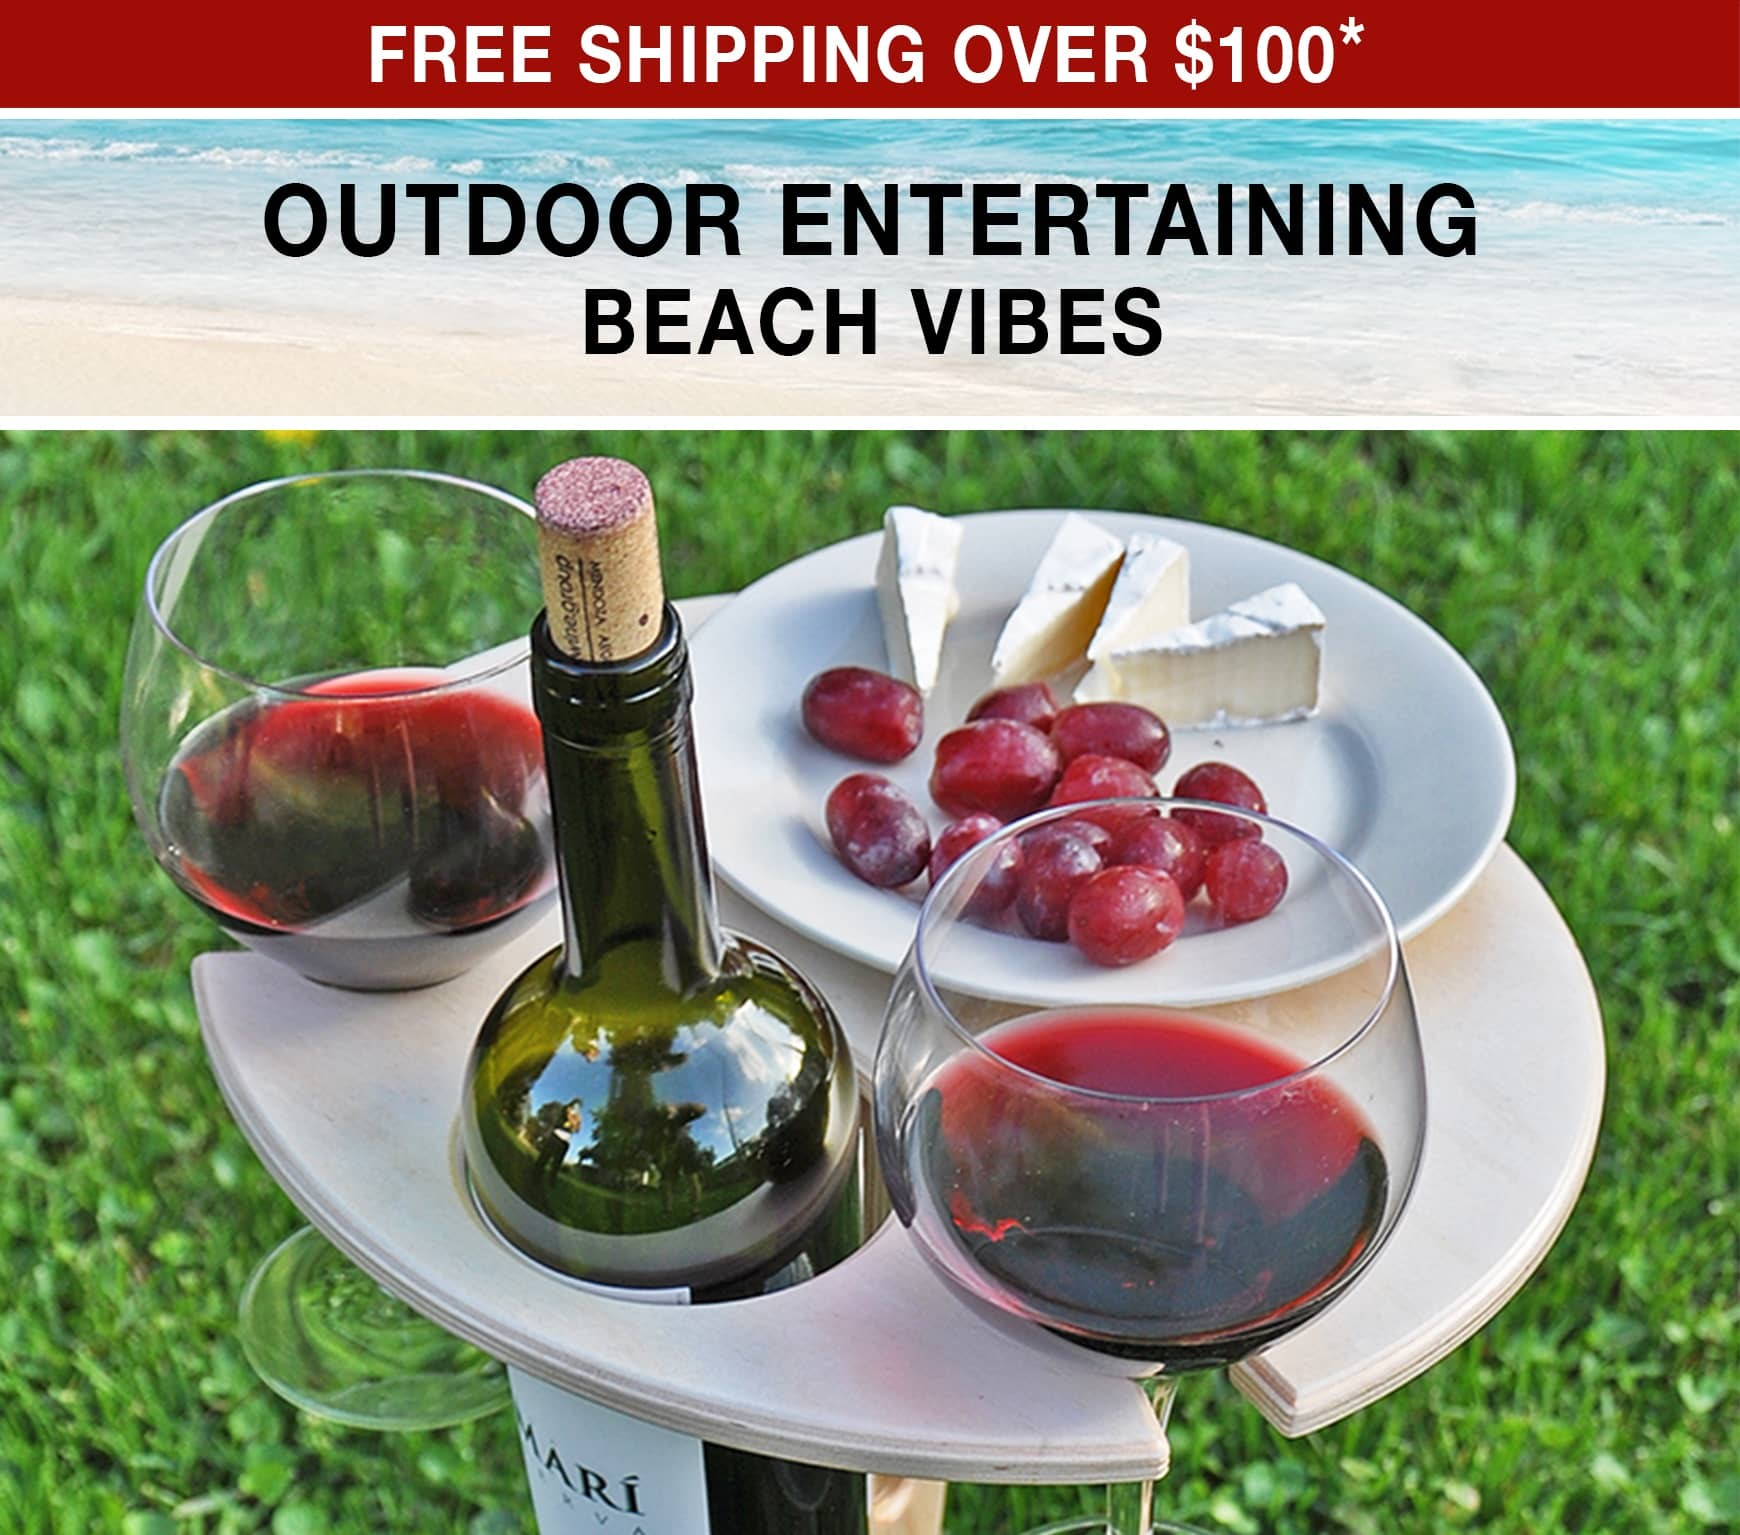 Outdoor Entertaining Beach Vibes - Free Shipping Over $100 use code FS21W